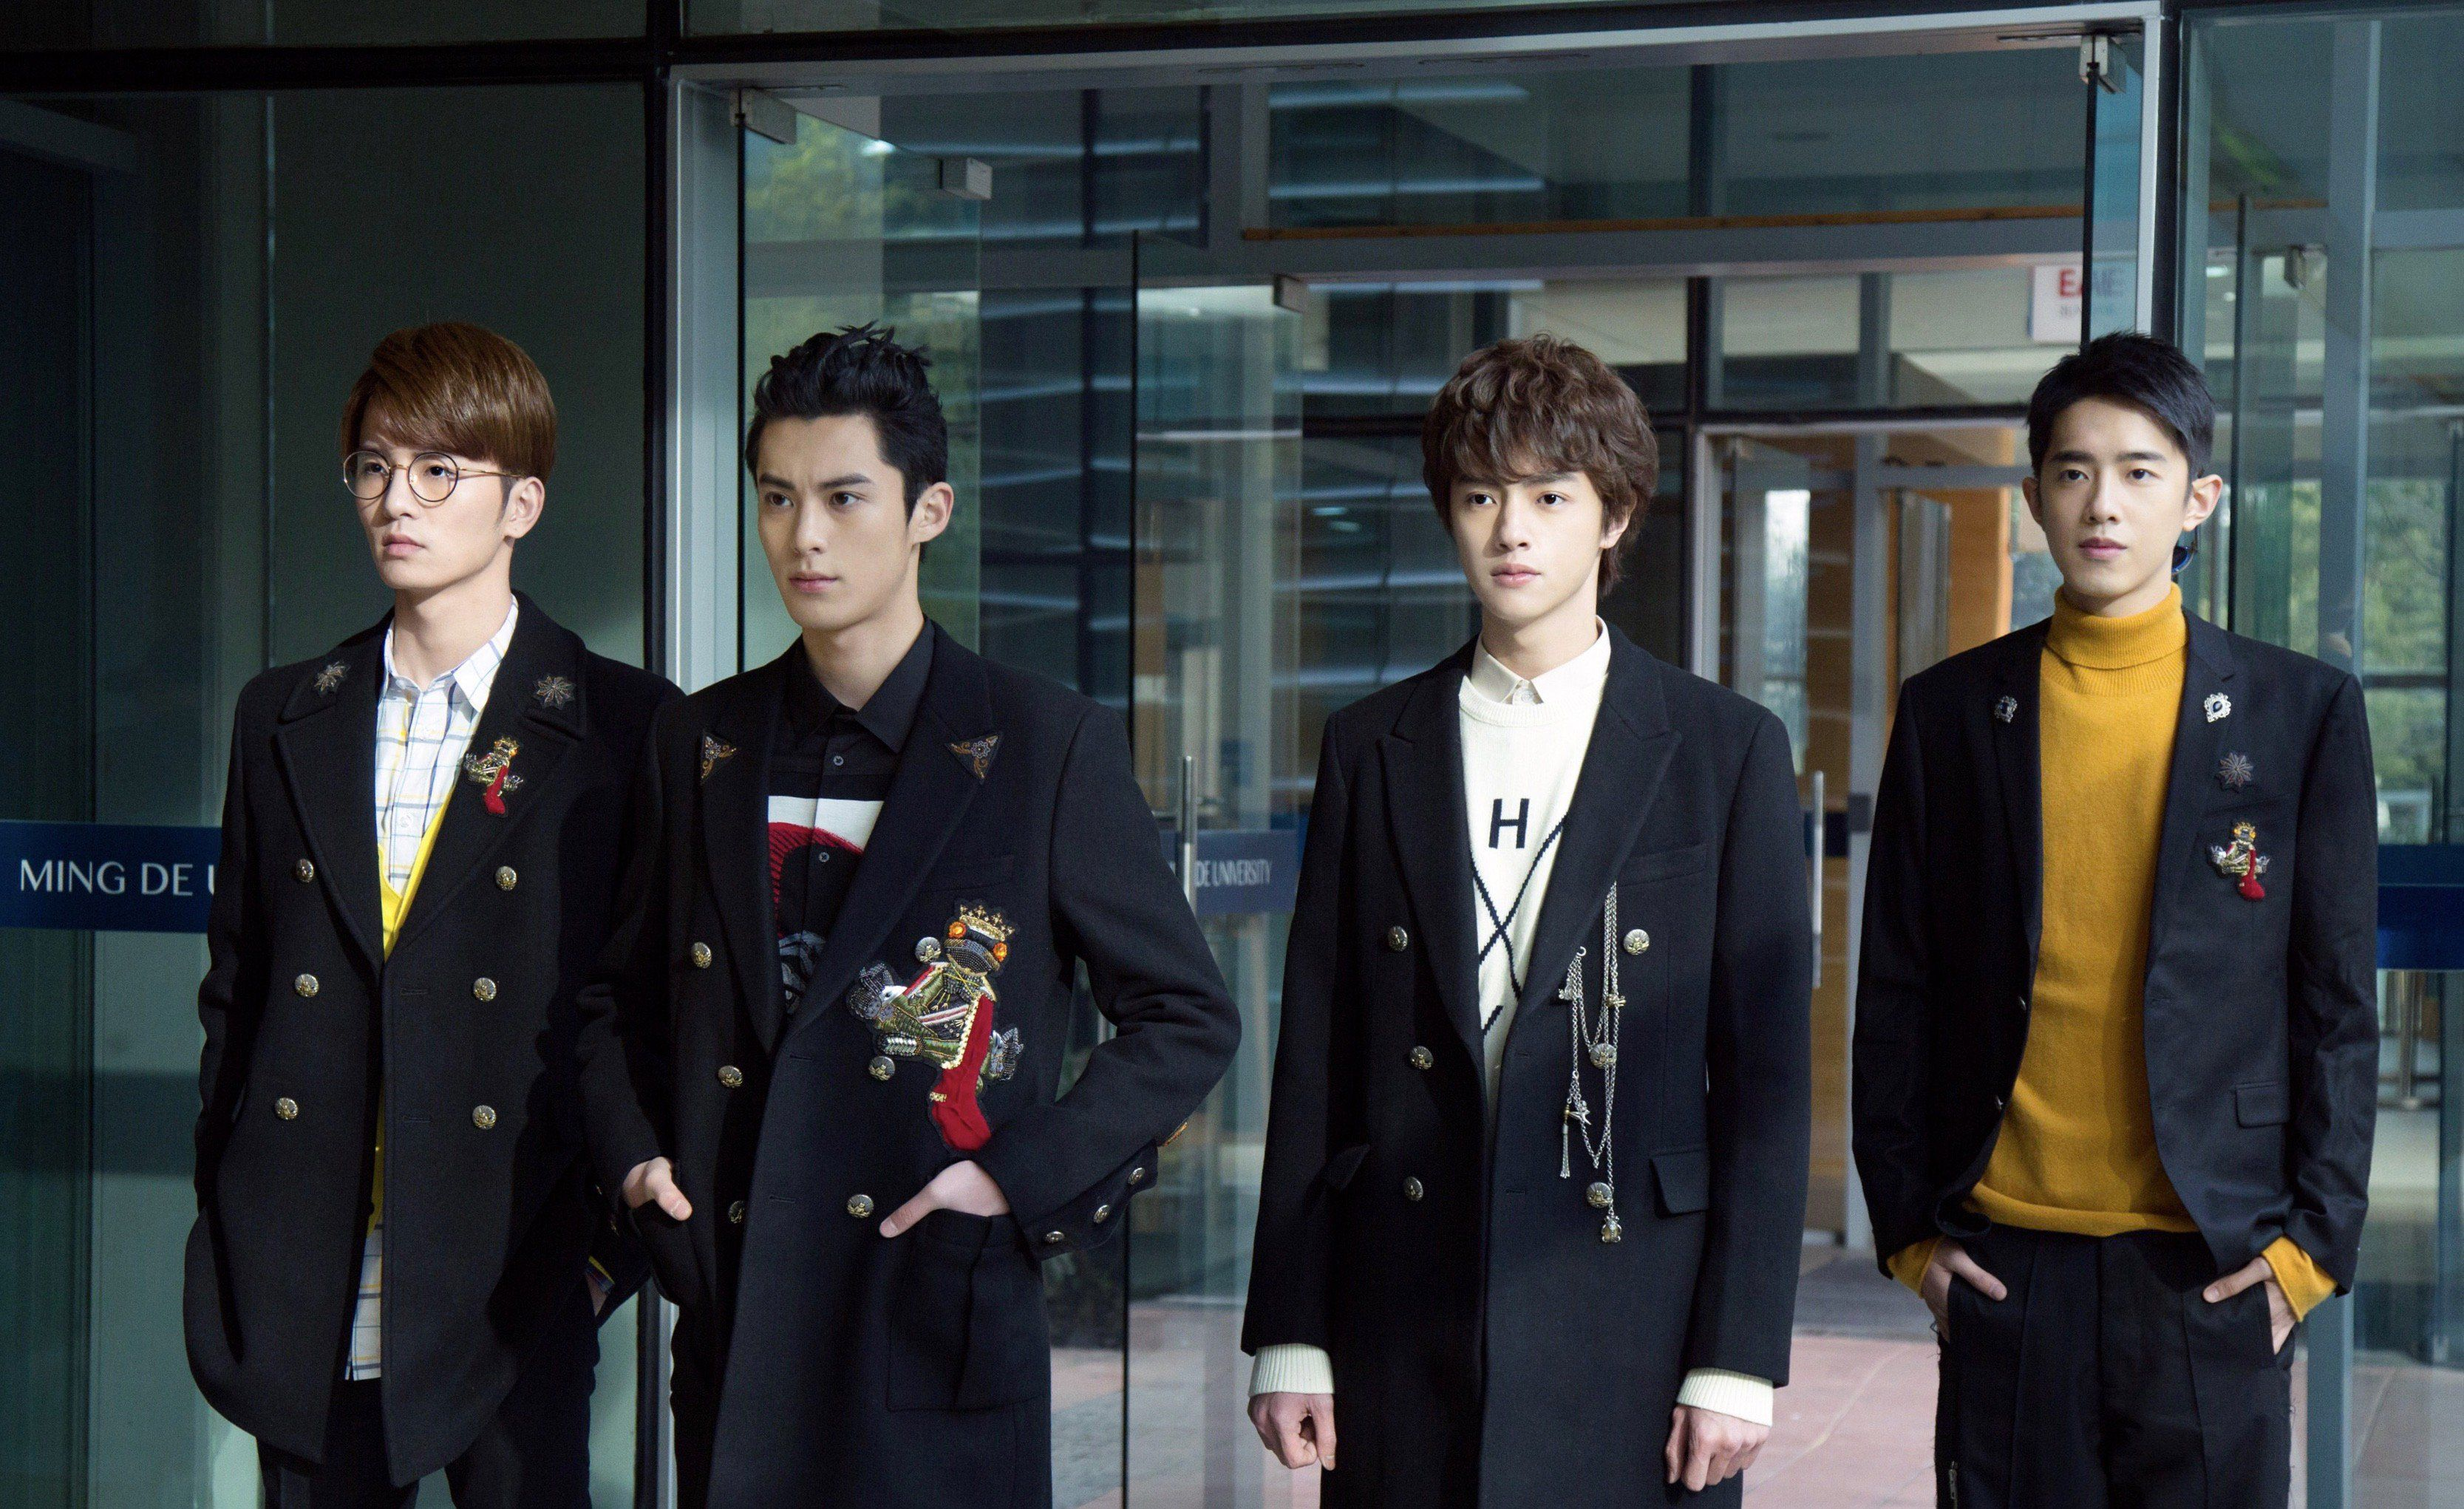 New F4 are ready to charm in Netflix's 'Meteor Garden